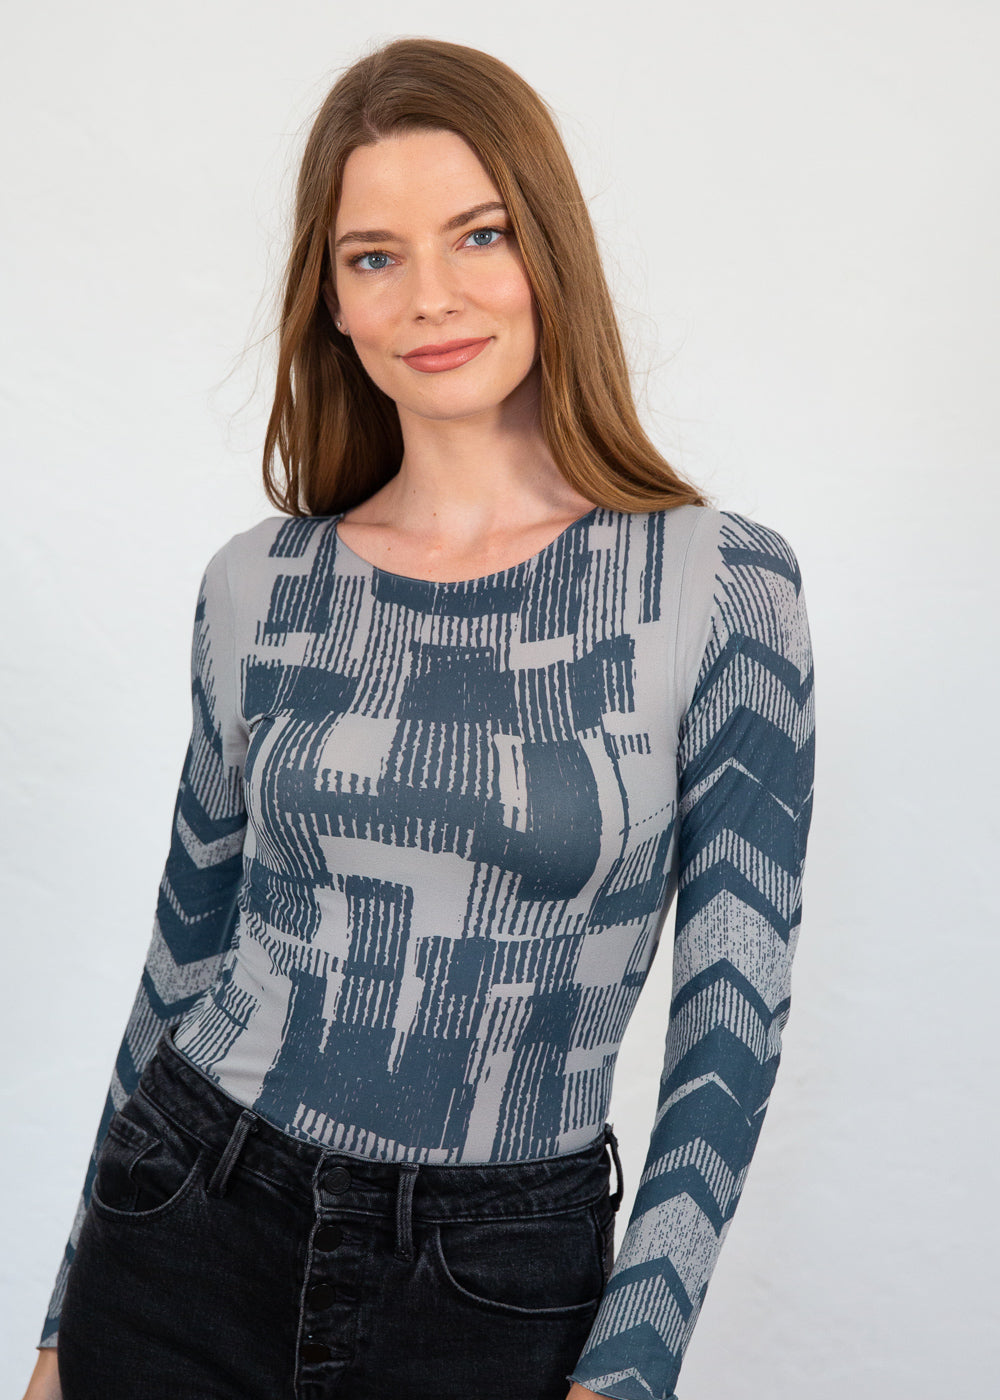 Textured Monochrome Second Skin Raw Edge Top